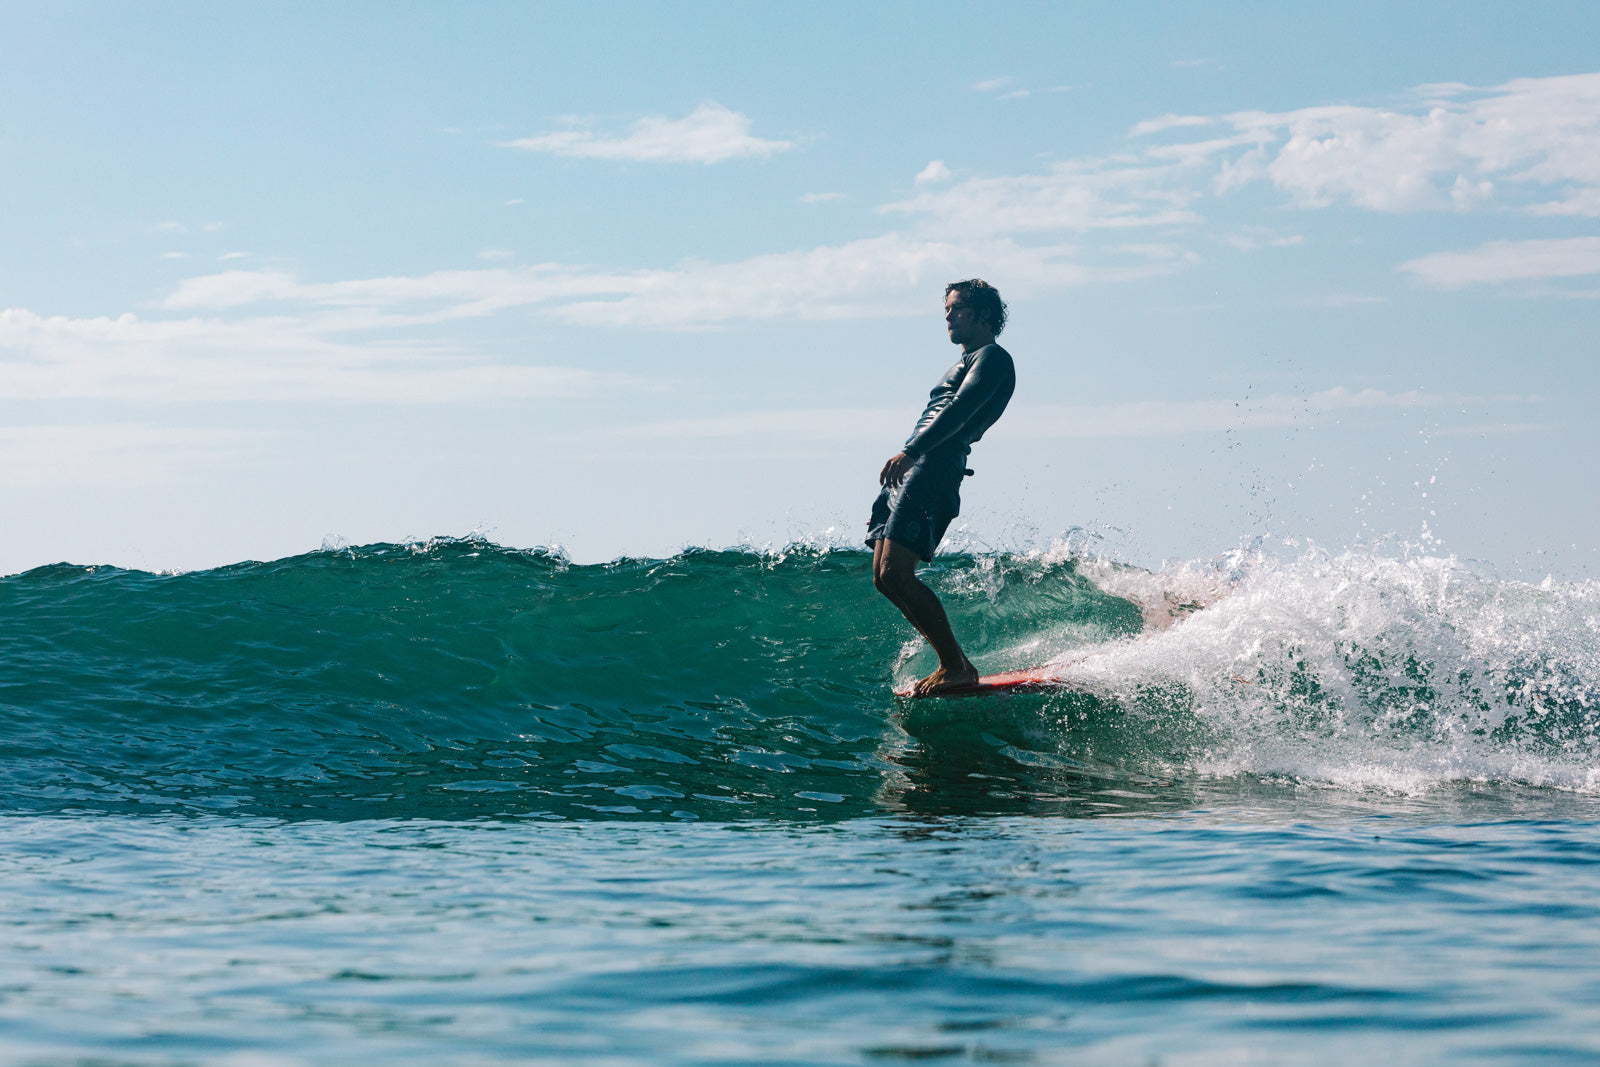 Katin surfer Saxon Wilson demonstrates the art of noseriding with ease at Malibu, 2020. Photo by Edin Markulin.